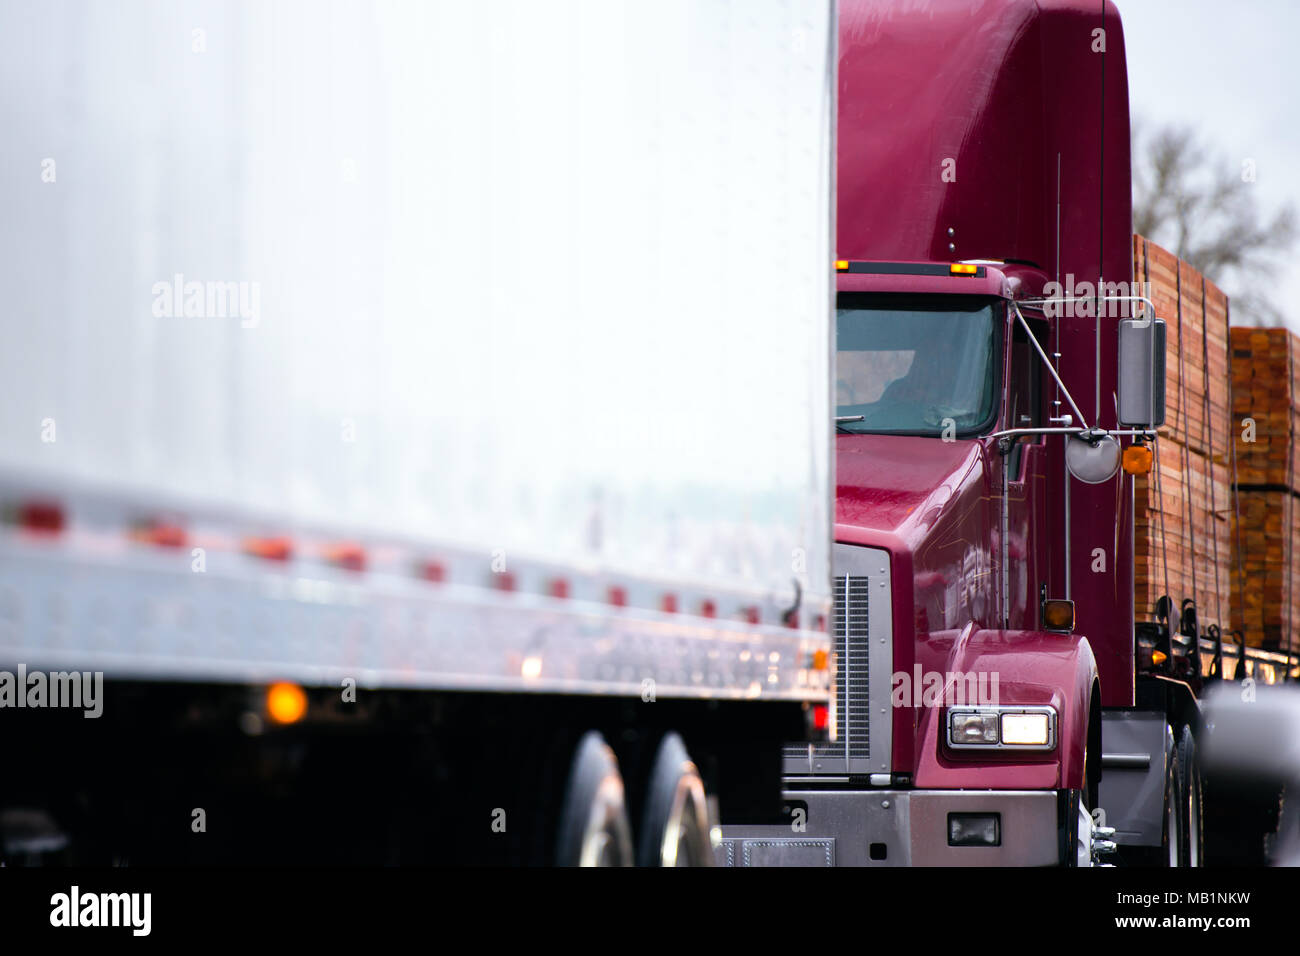 Big Rig Classic Powerful Dark Red Semi Truck Tractor Transporting Stacks Of Boards Lumber Wood On Flat Bed Semi Trailer Driving In Convoy Behind Anoth Stock Photo Alamy